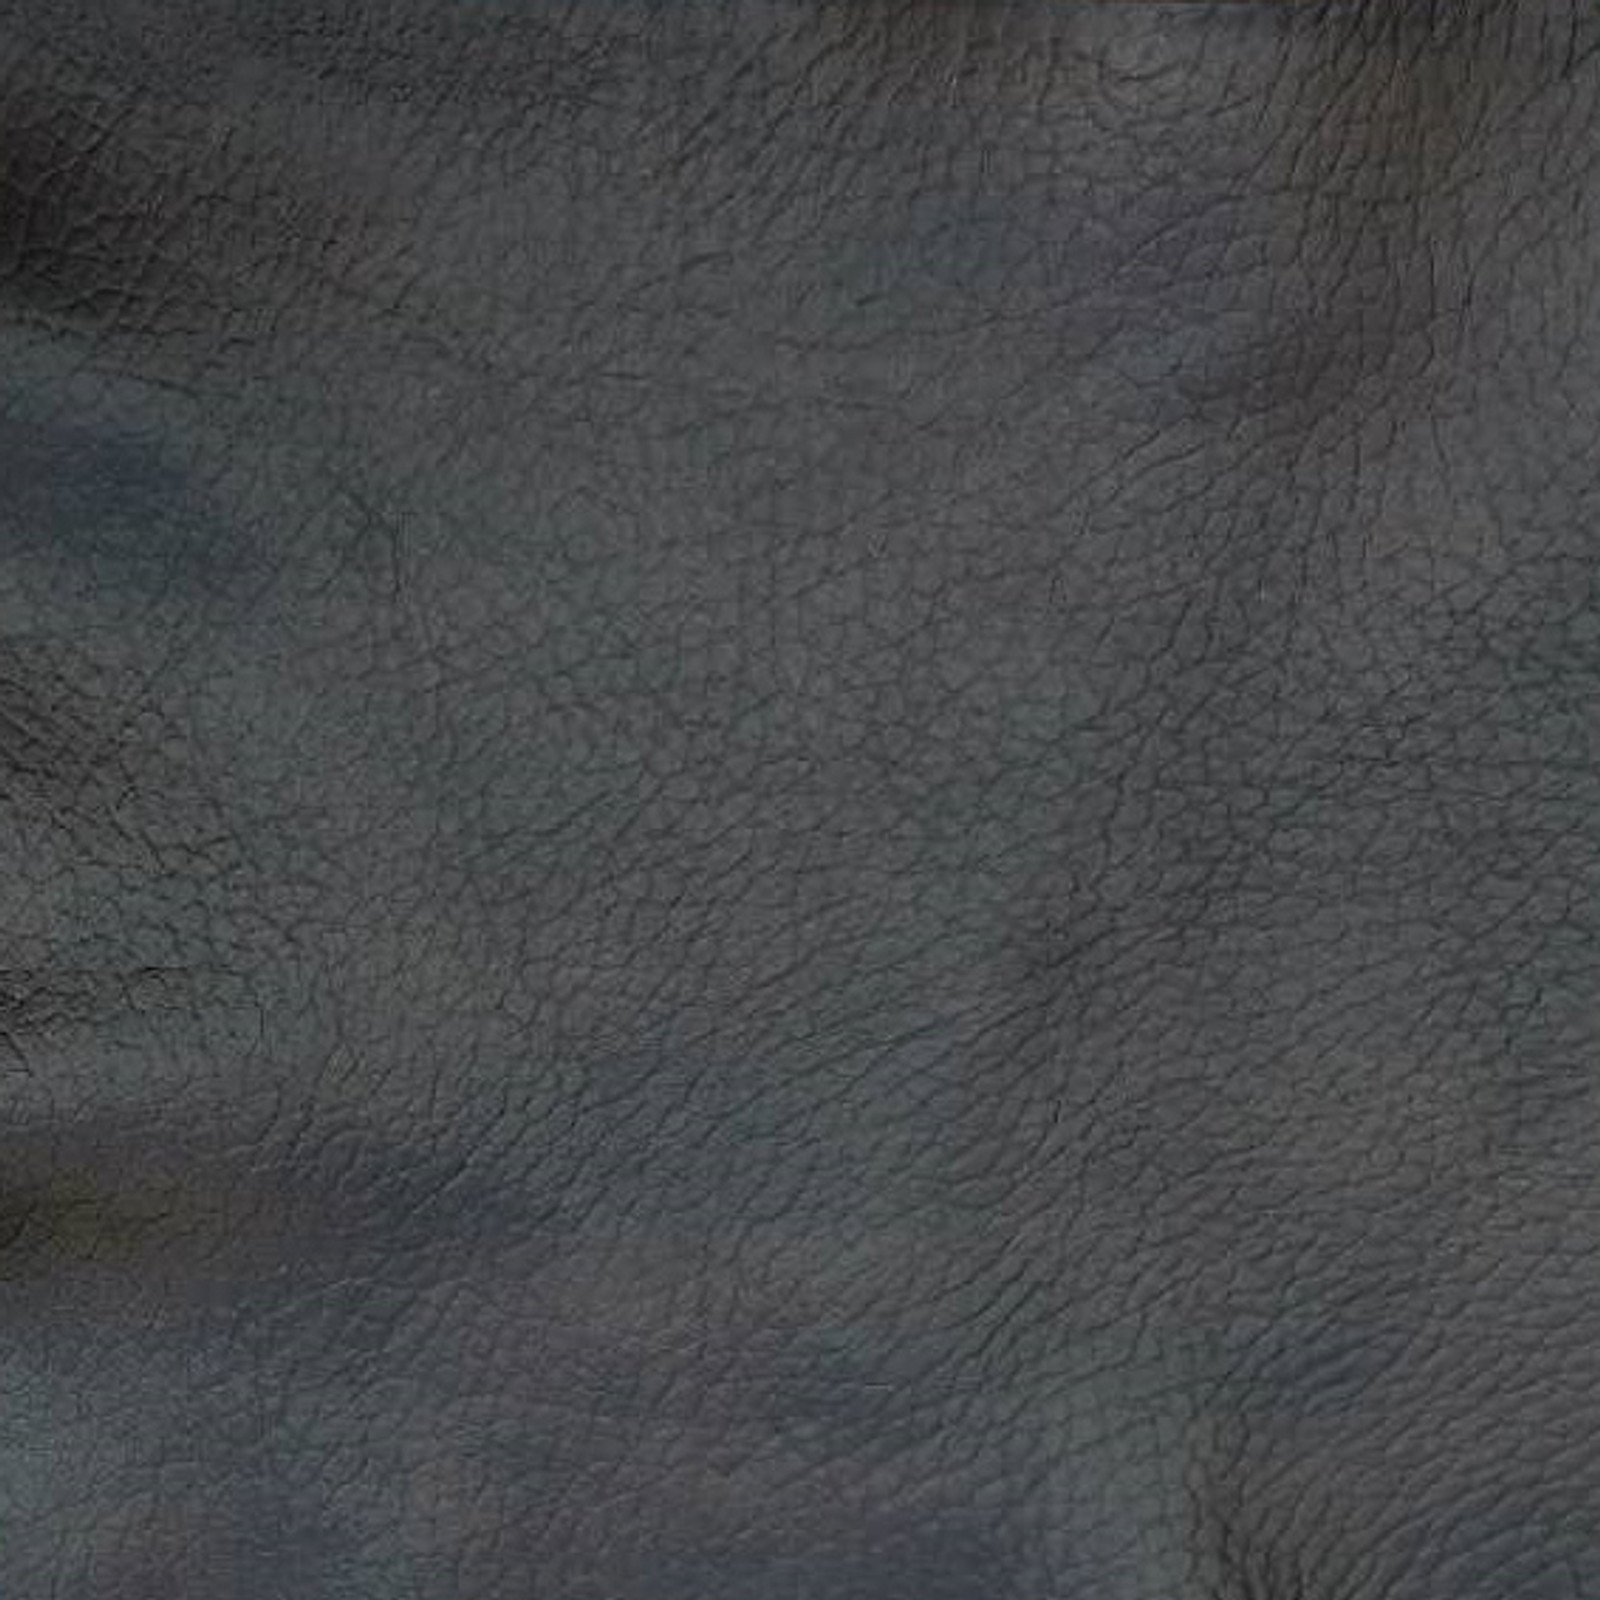 Leather, Dream DK Brown